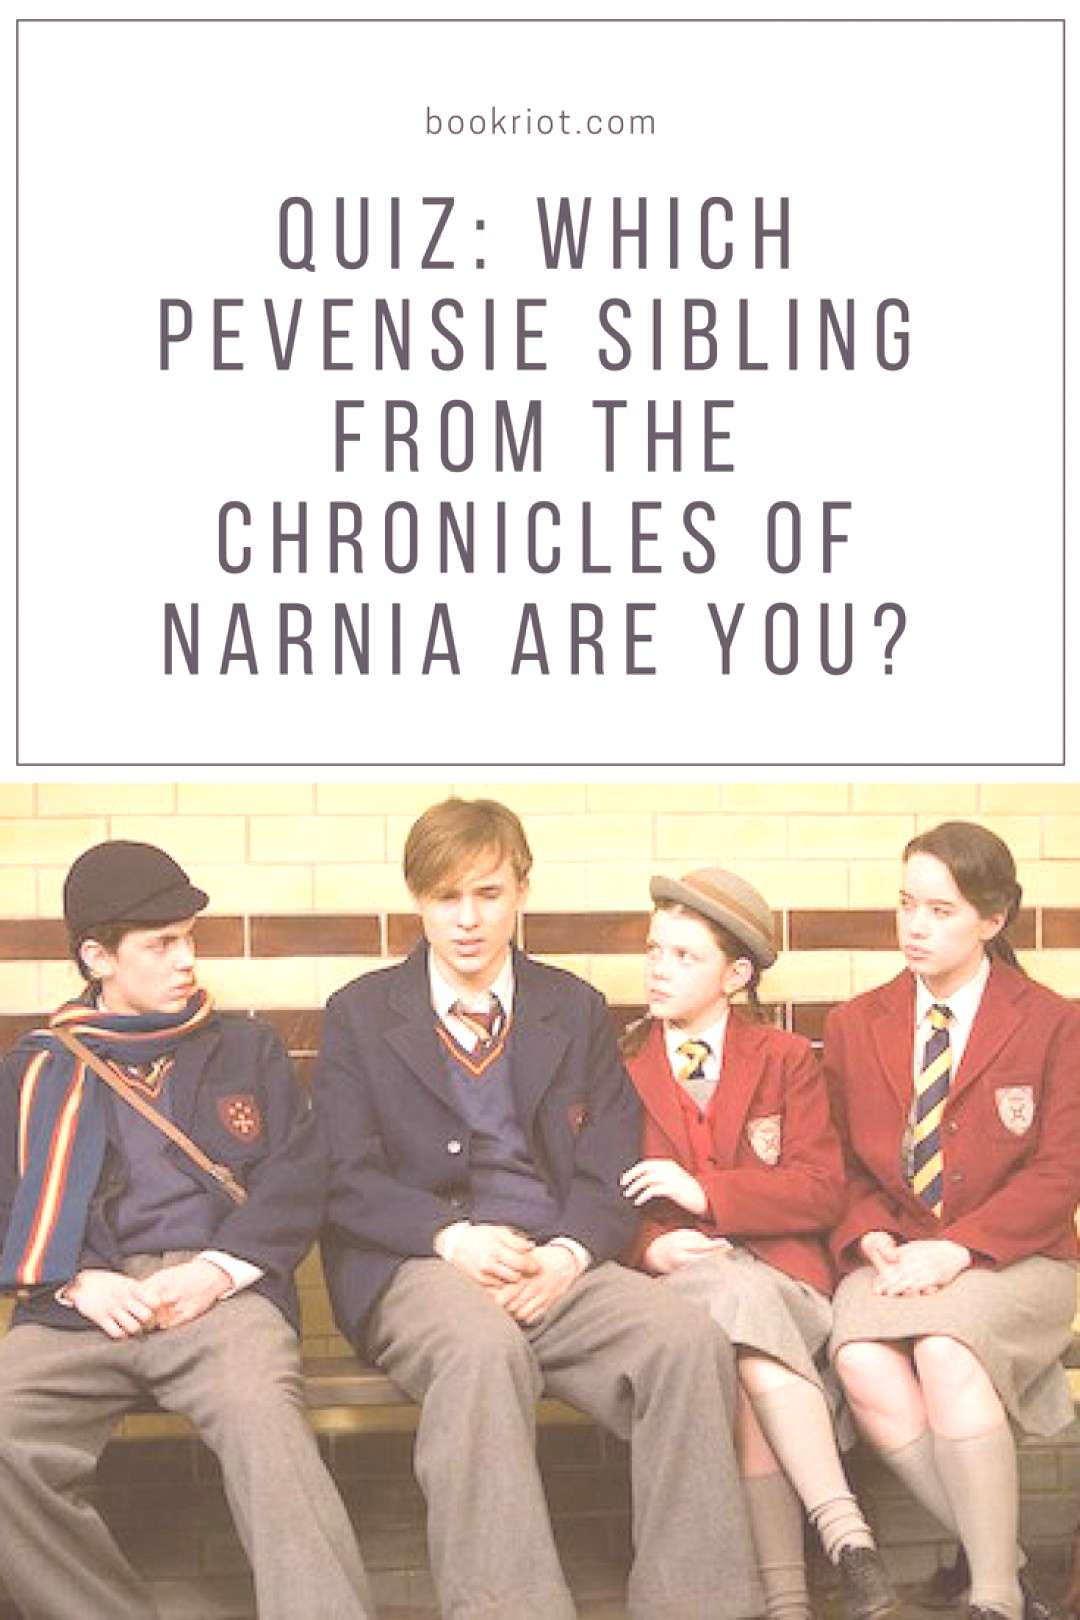 Take the quiz to discover which Pevensie sibling from The Chronicles Of Narnia you are.  quizzes |